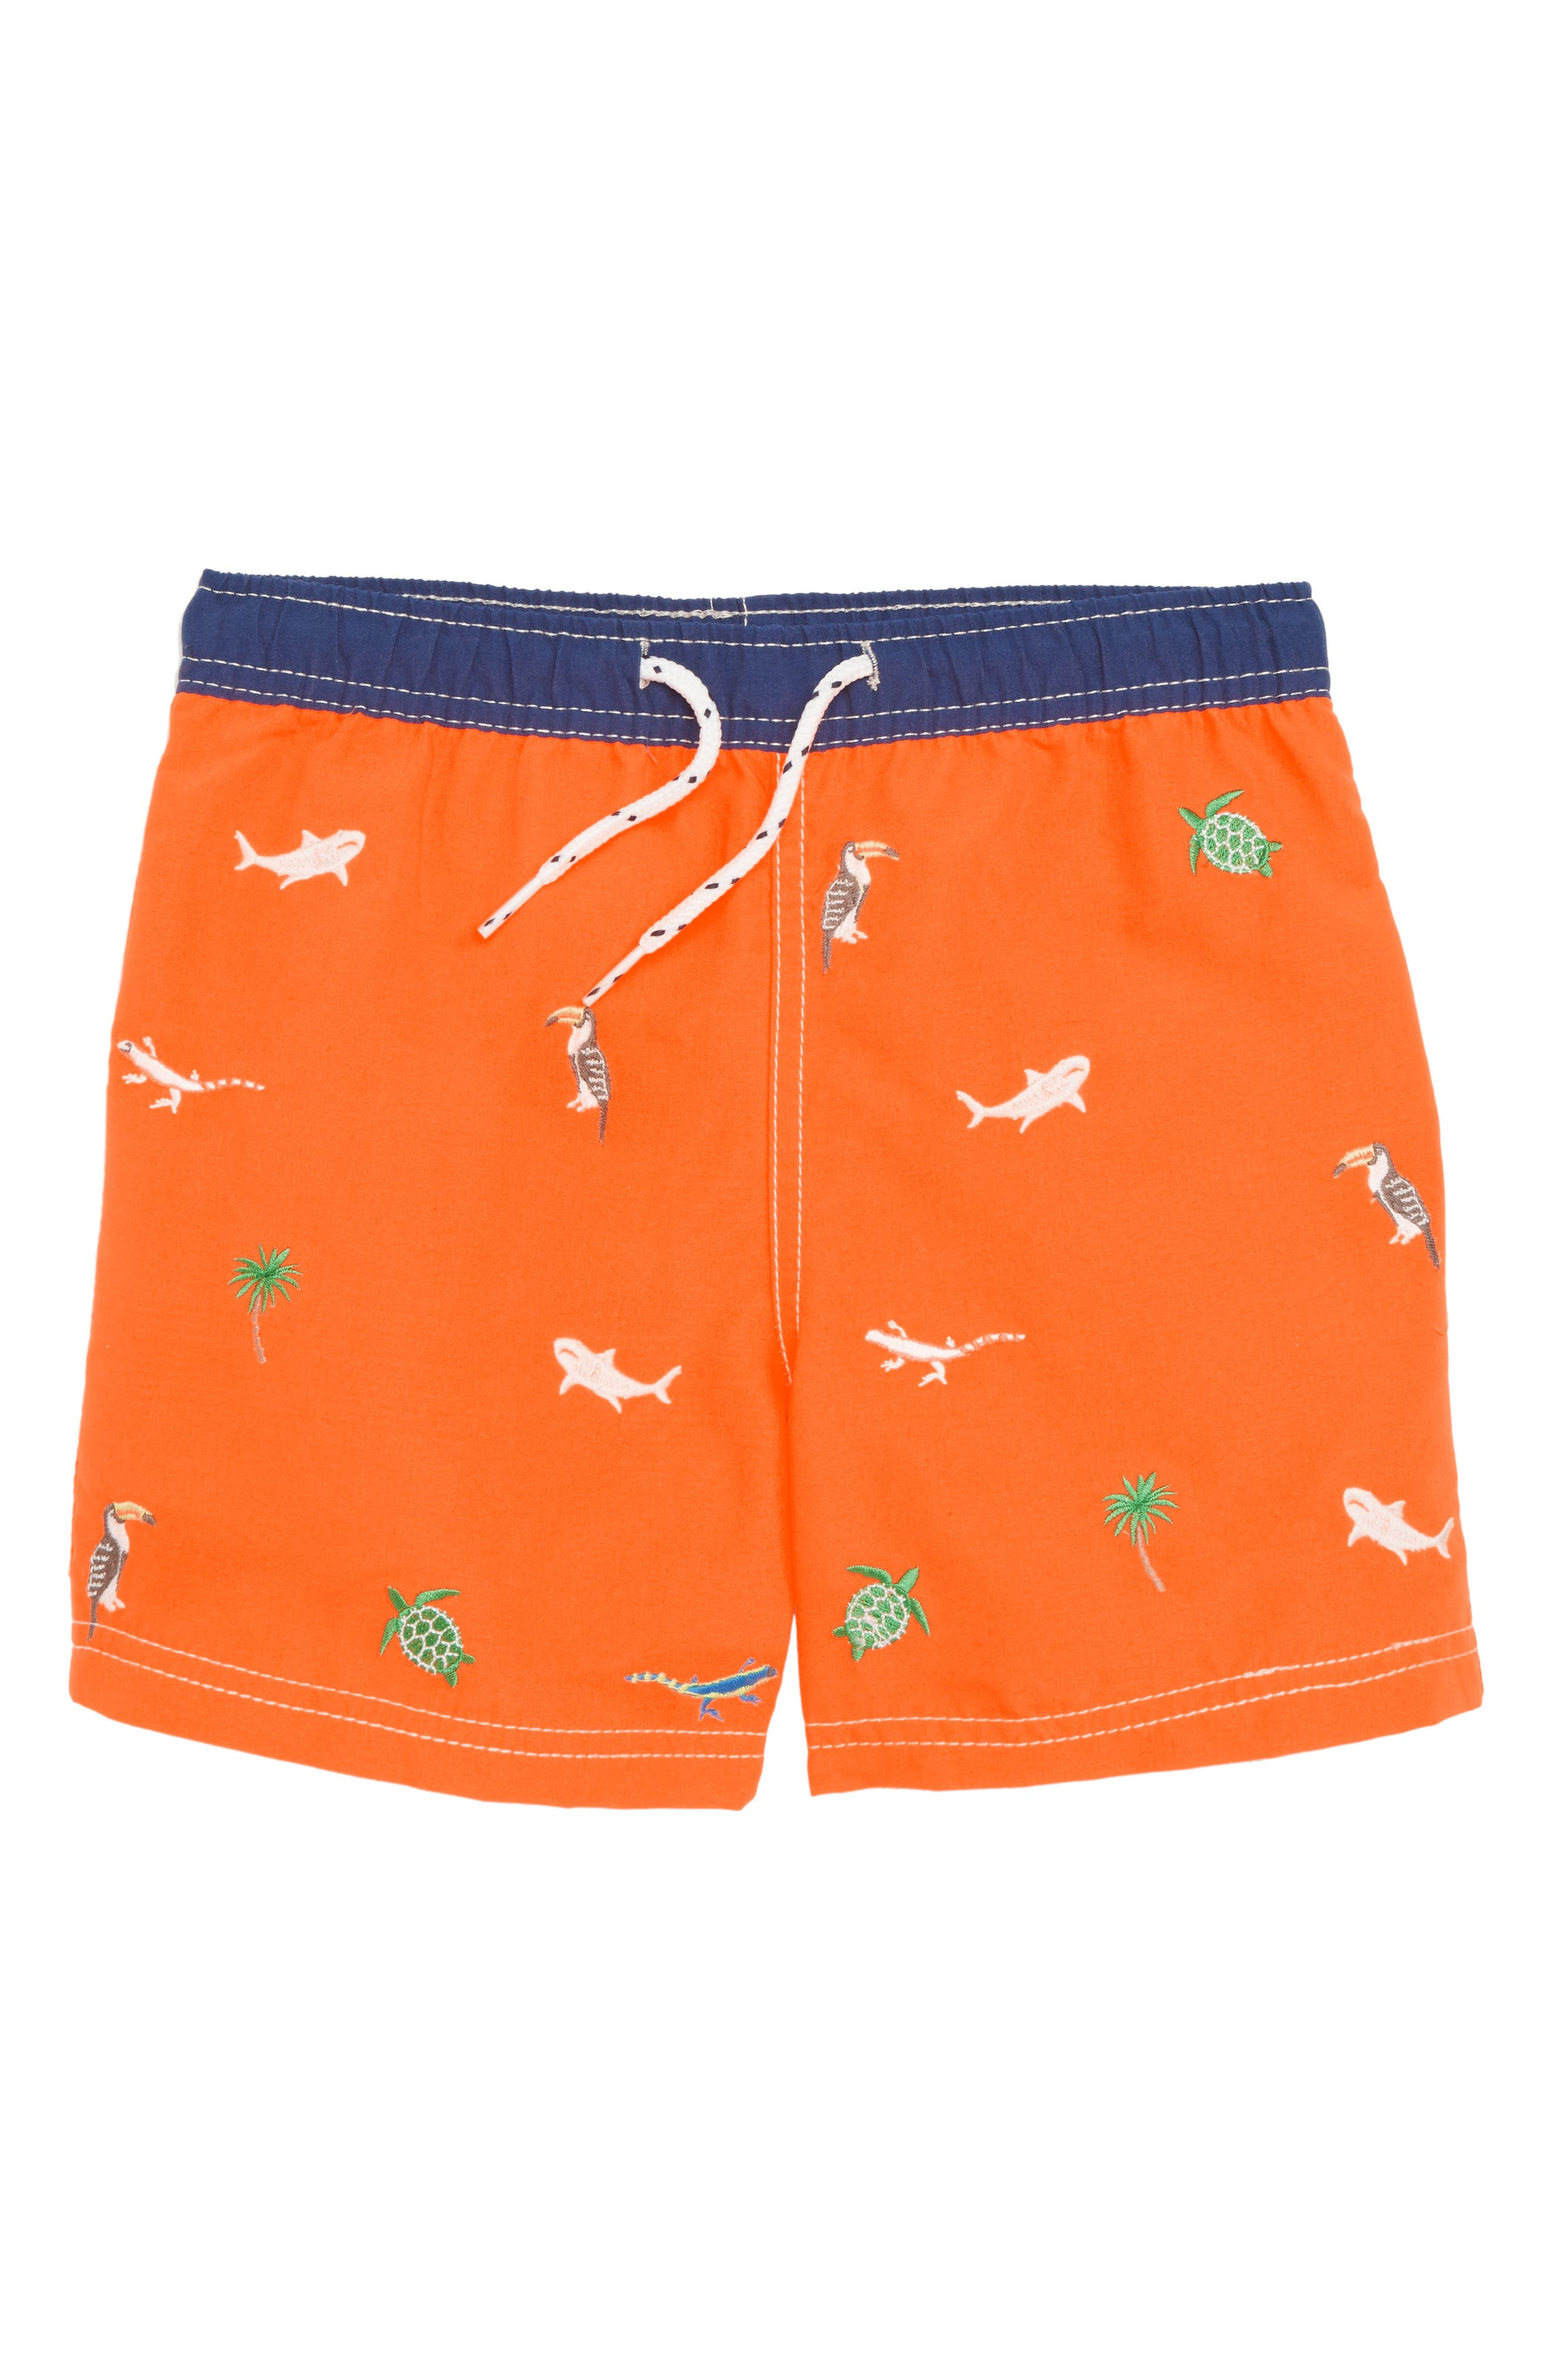 Embroidered Swim Trunks,                         Main,                         color, 834